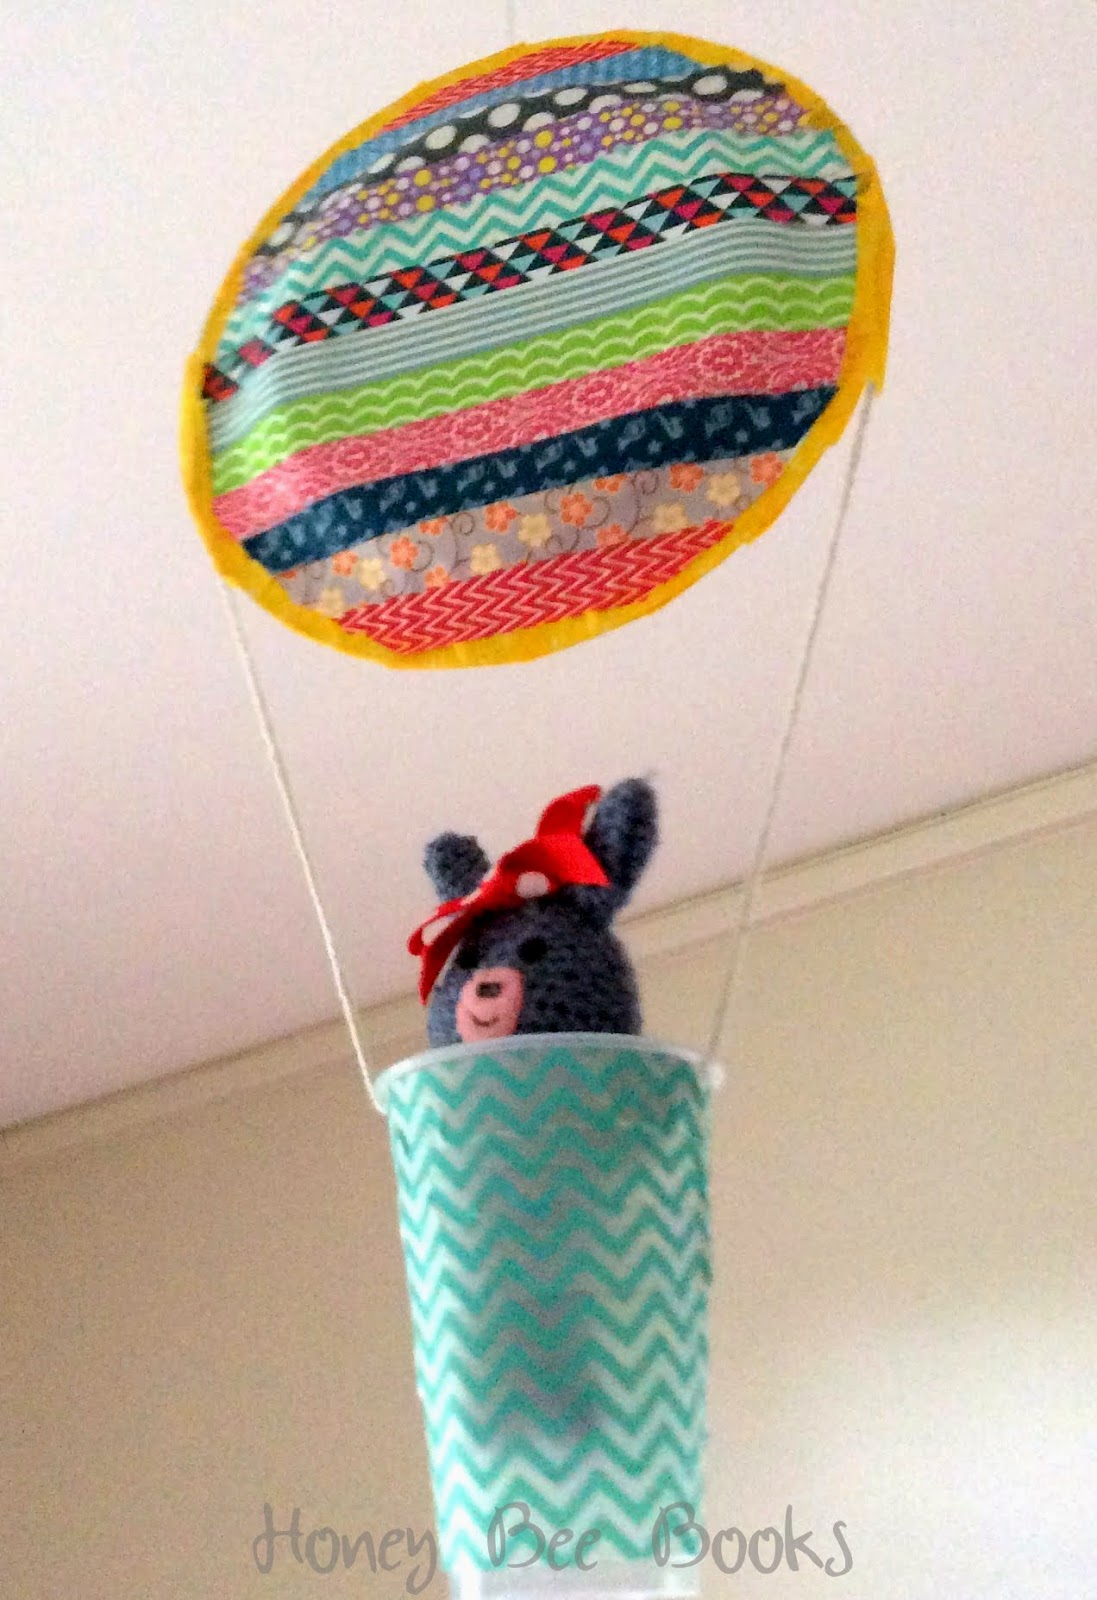 Paper Plate Hot Air Balloon decorated with Washi tape